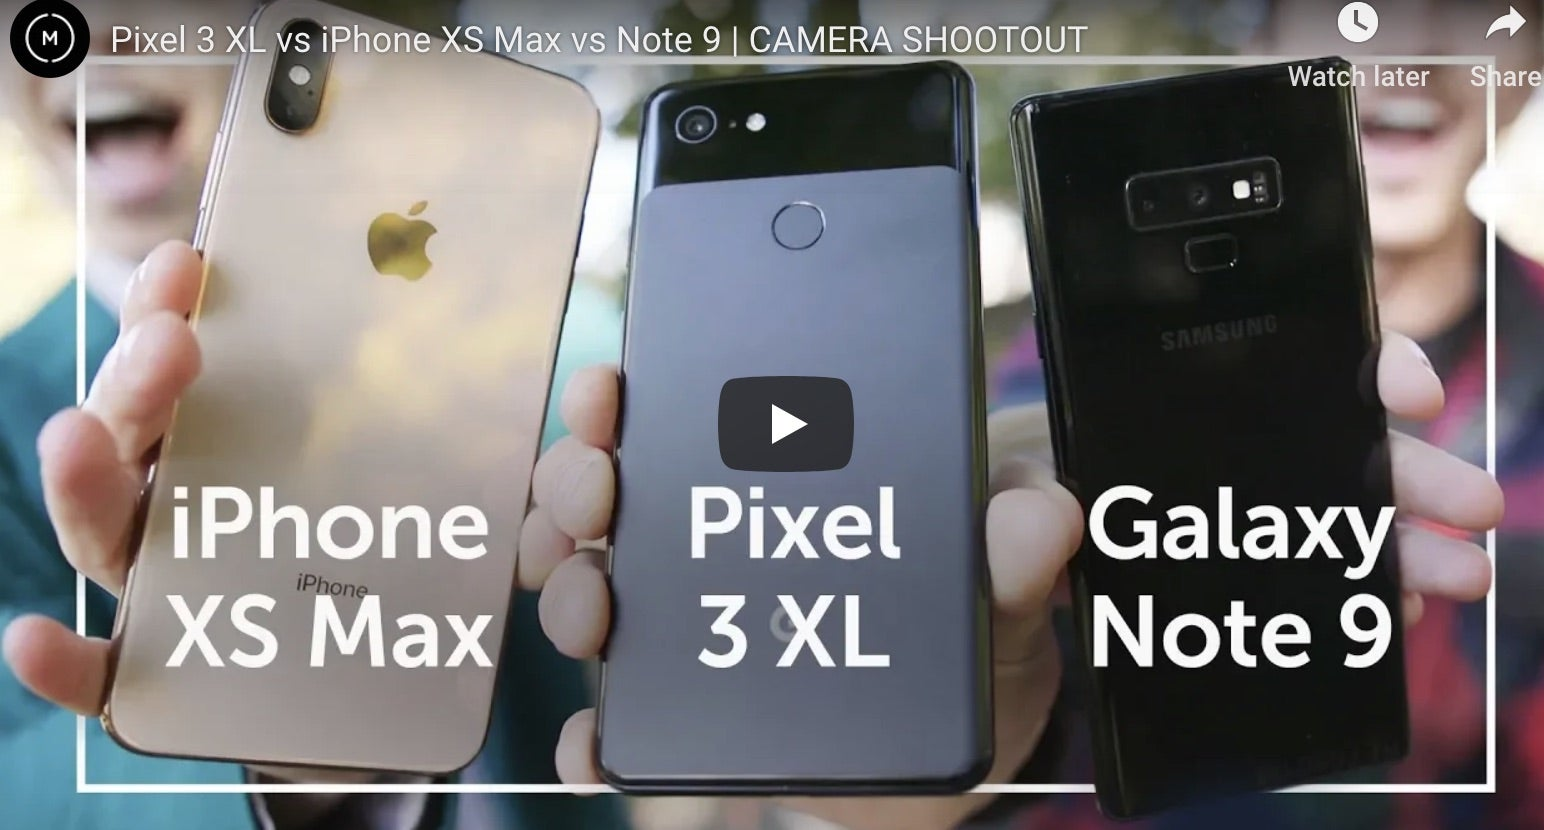 iPhone XS Max vs Samsung Galaxy Note 9 vs Google Pixel 3 XL – The Best Camera for Travel Photography Is Clear